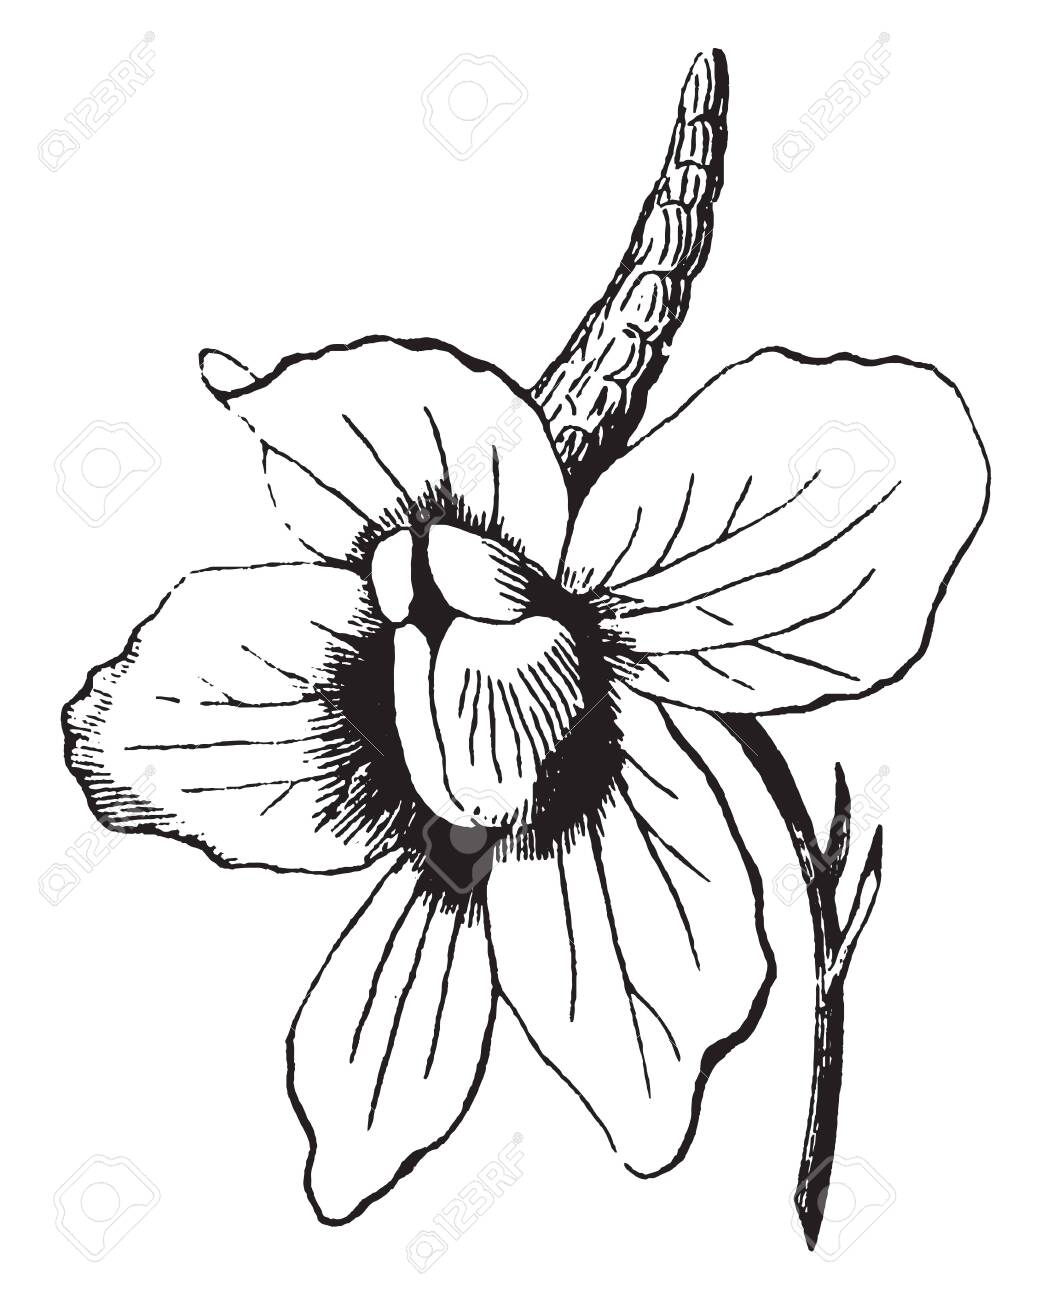 This Showing Flower Has Five Petals Stem Support To Single Flower Royalty Free Cliparts Vectors And Stock Illustration Image 132854111